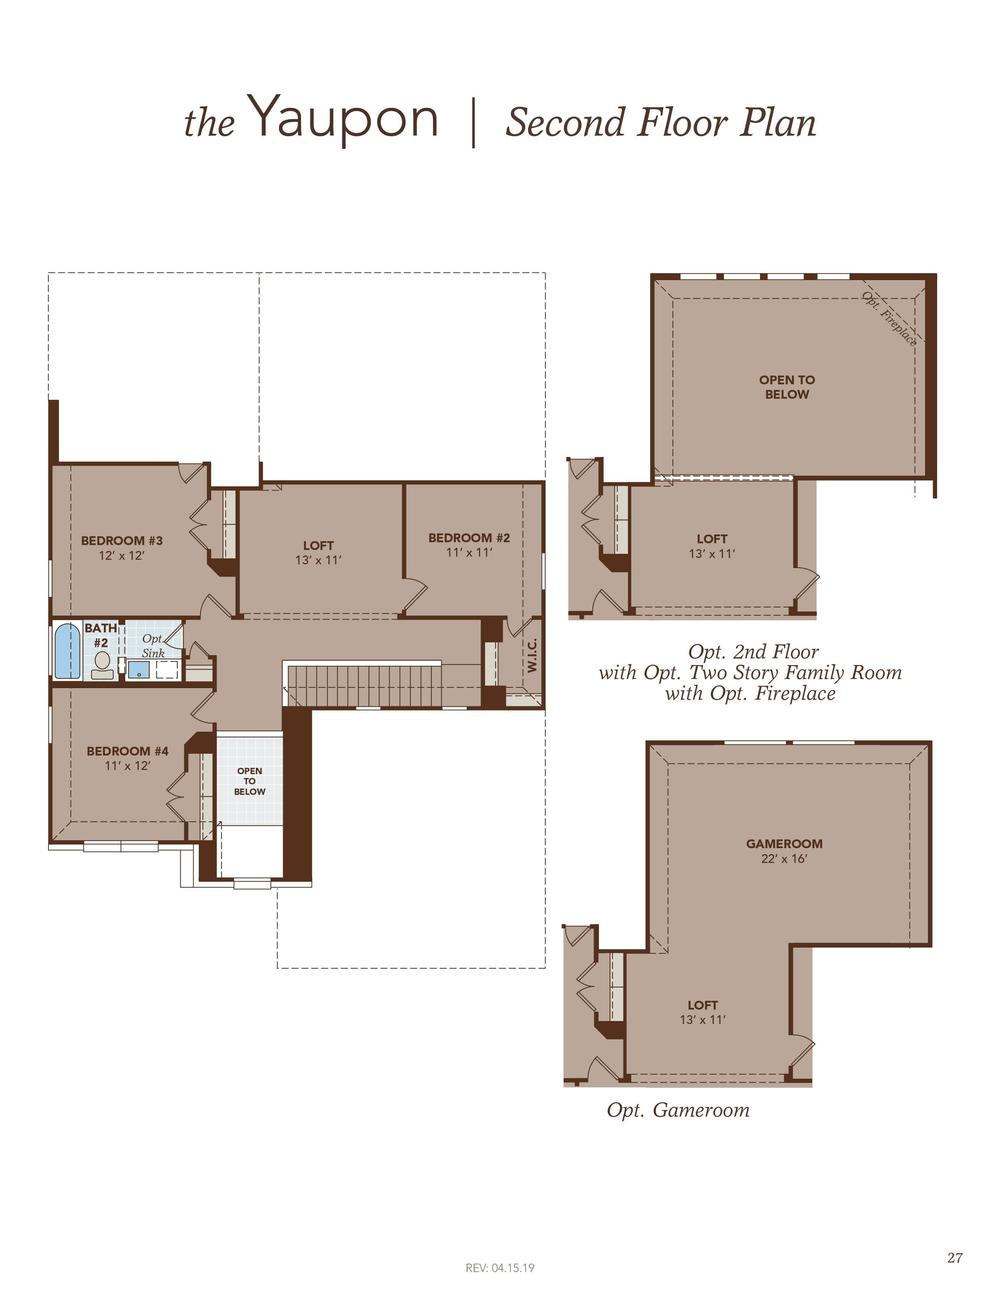 Yaupon Second Floor Plan